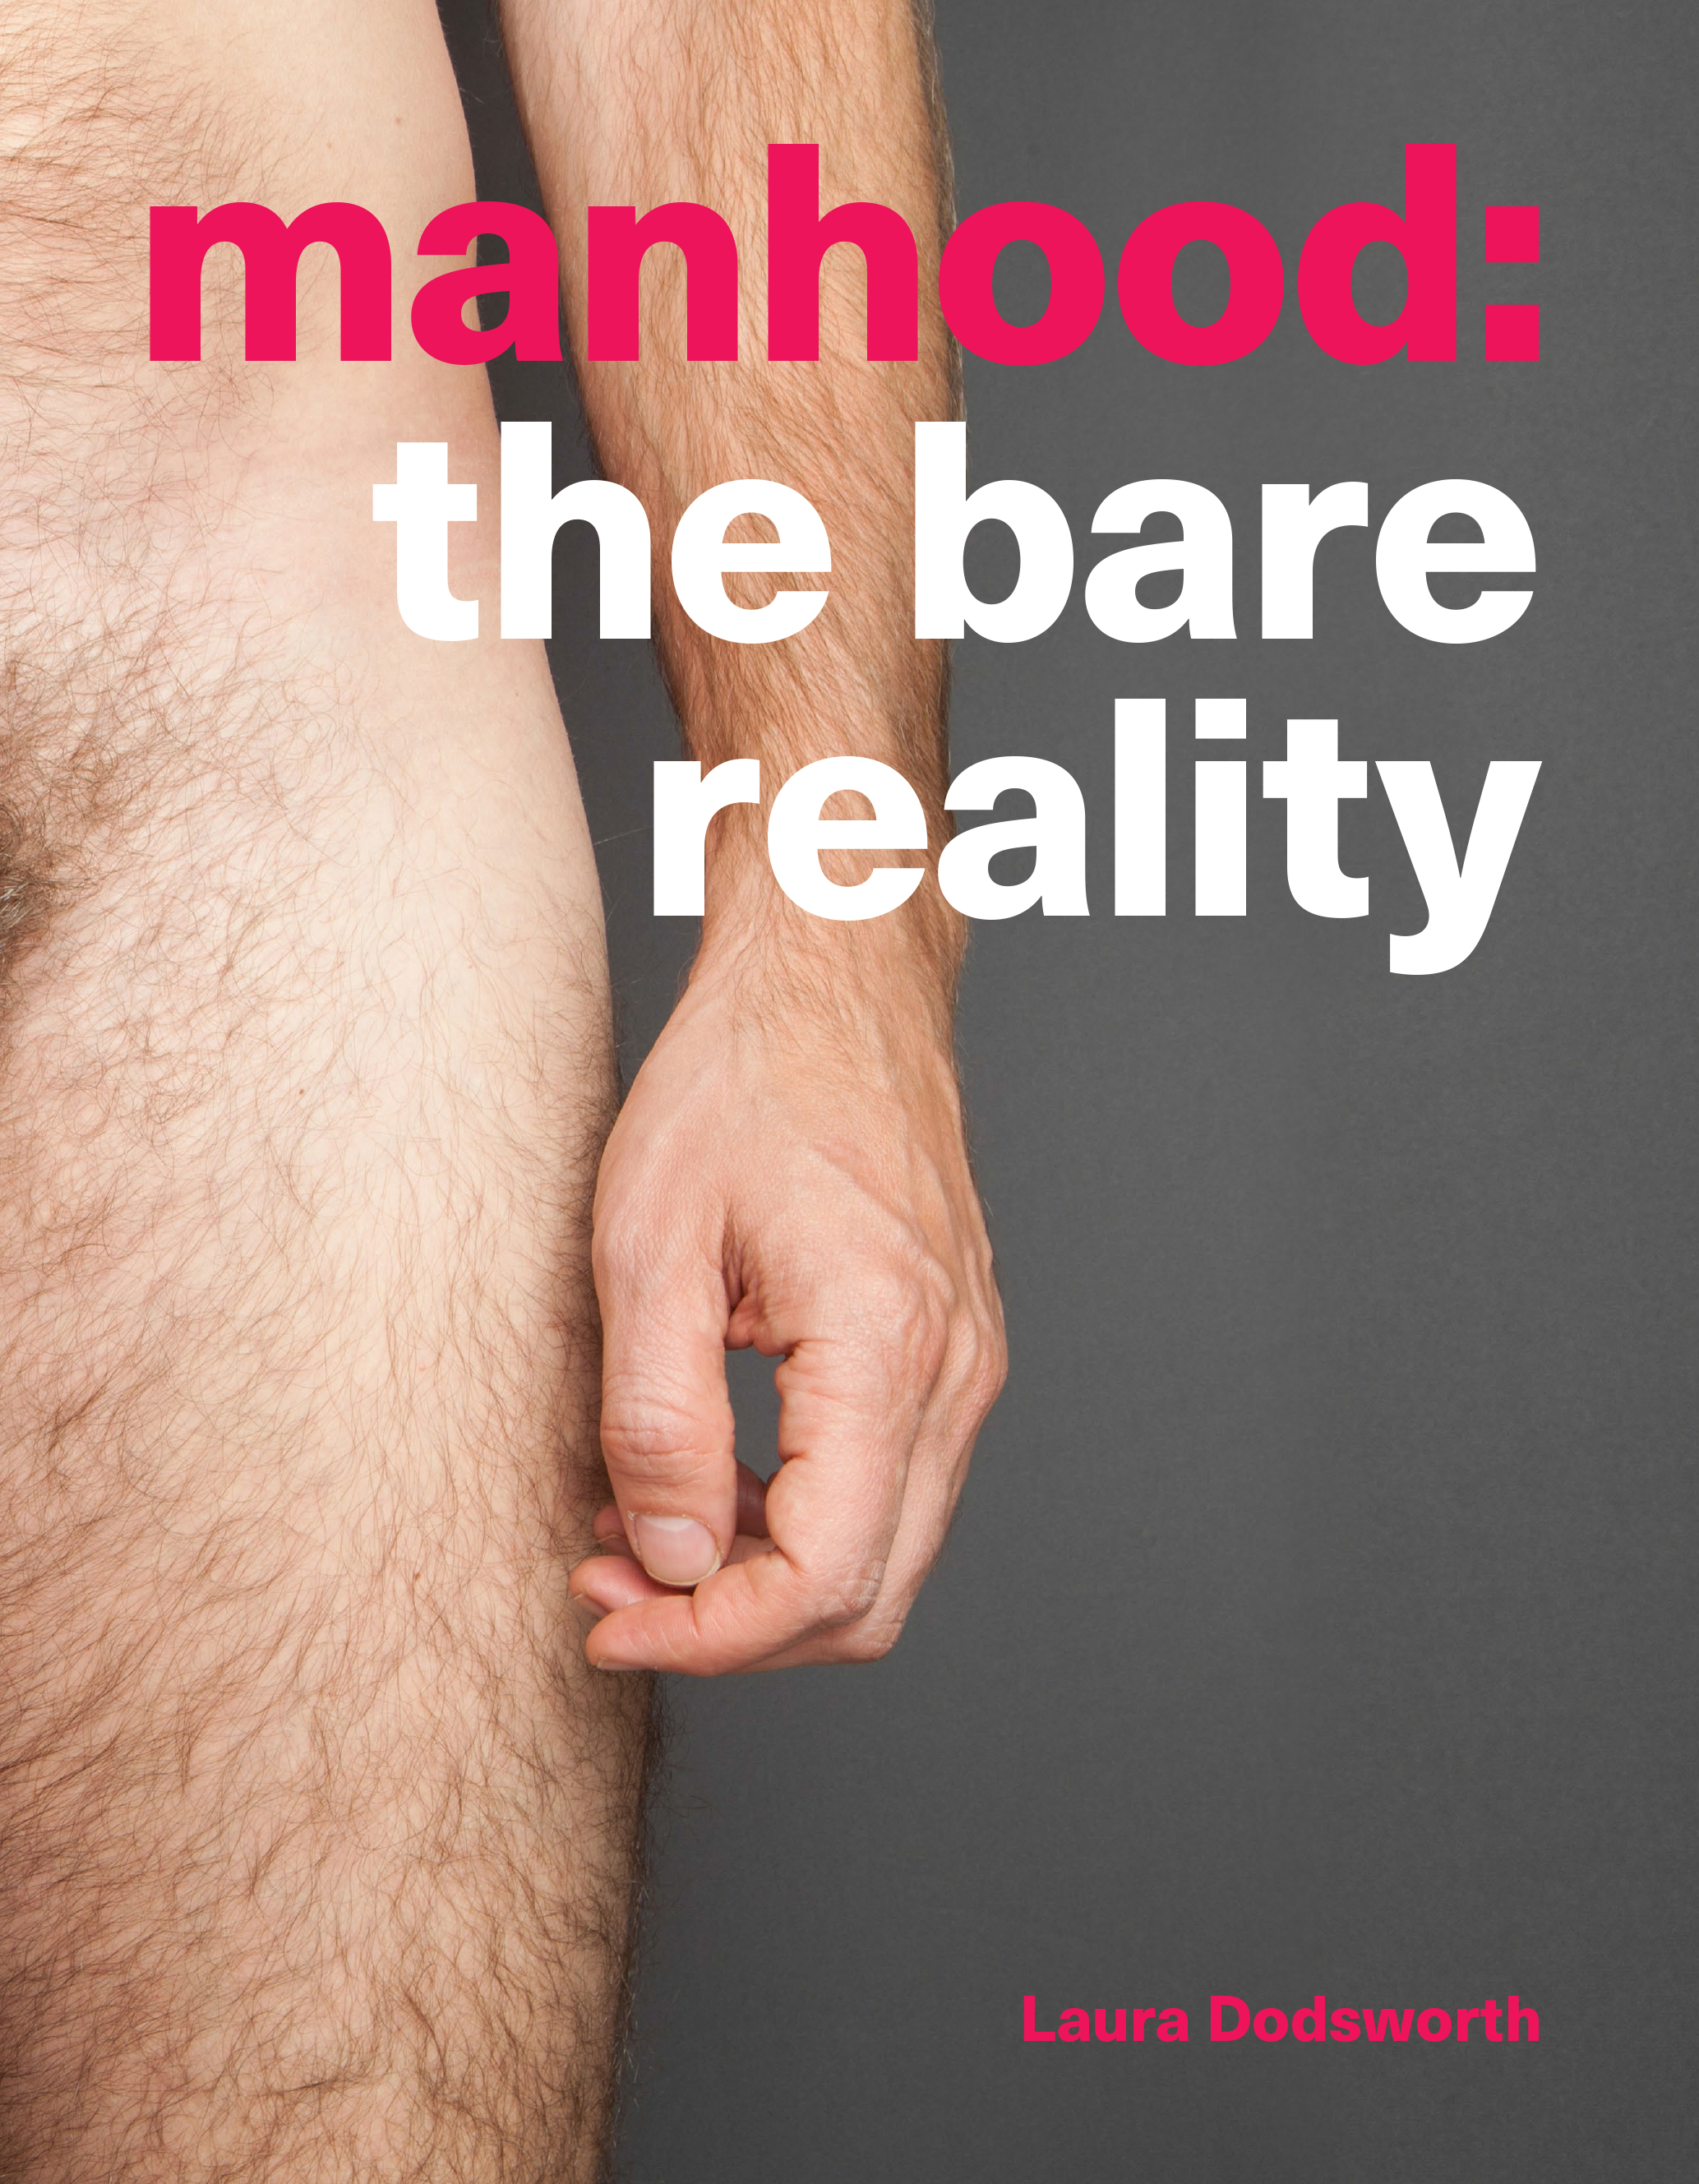 100 men bare all - In a collection of photographs and interviews about manhood and 'manhood'…read more